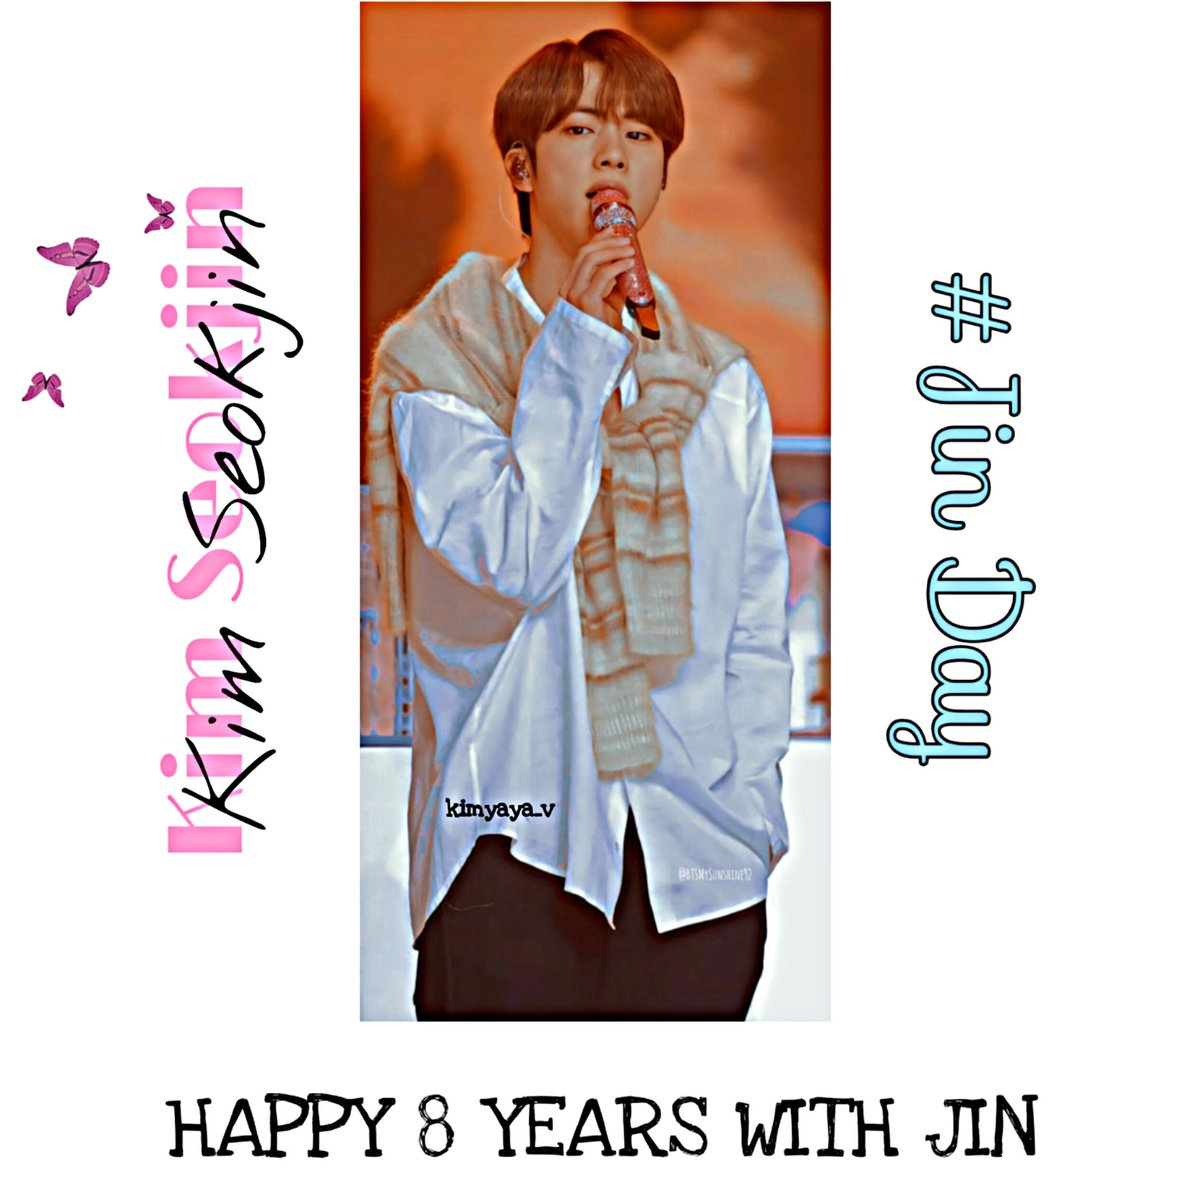 Happy 8 Years With Our Singer Jin ✨ @BTS_twt ❤👑 #HappyJinDay 🐹💜 #Happy8YearsWithMoon 🌝🌙💜